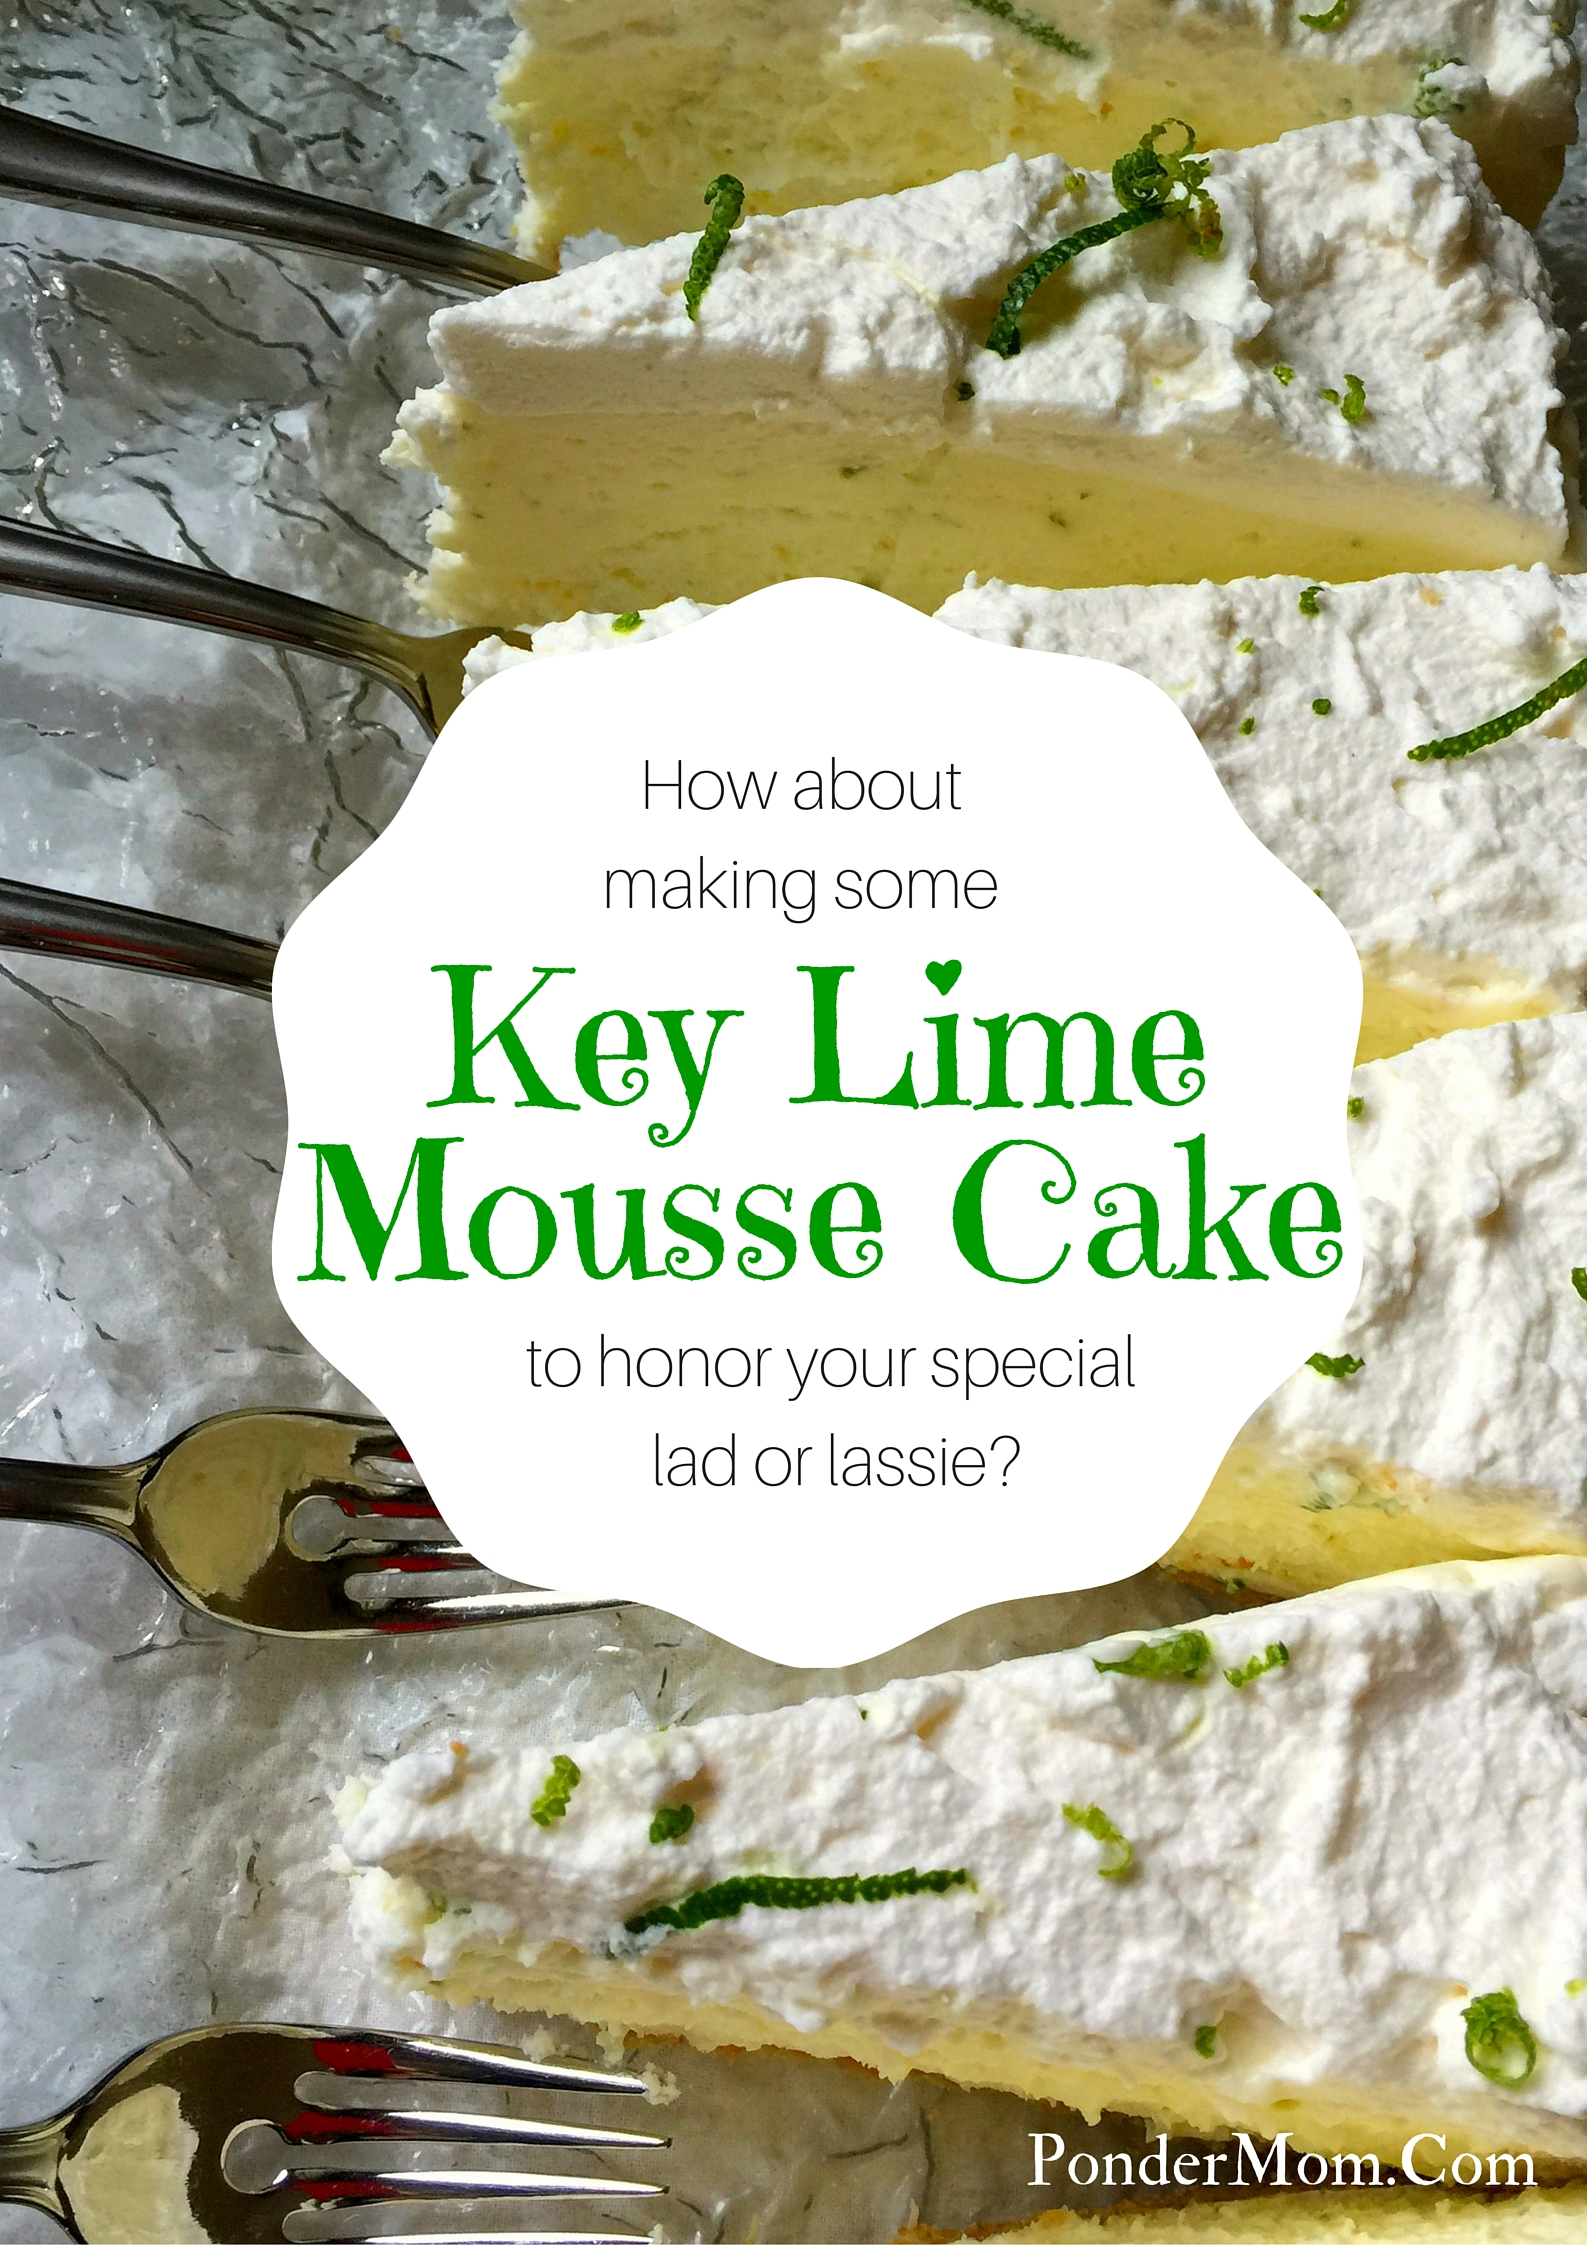 No Bake Key Lime Mousse Cake: A Wee Bit of Heaven for Your Darlin'